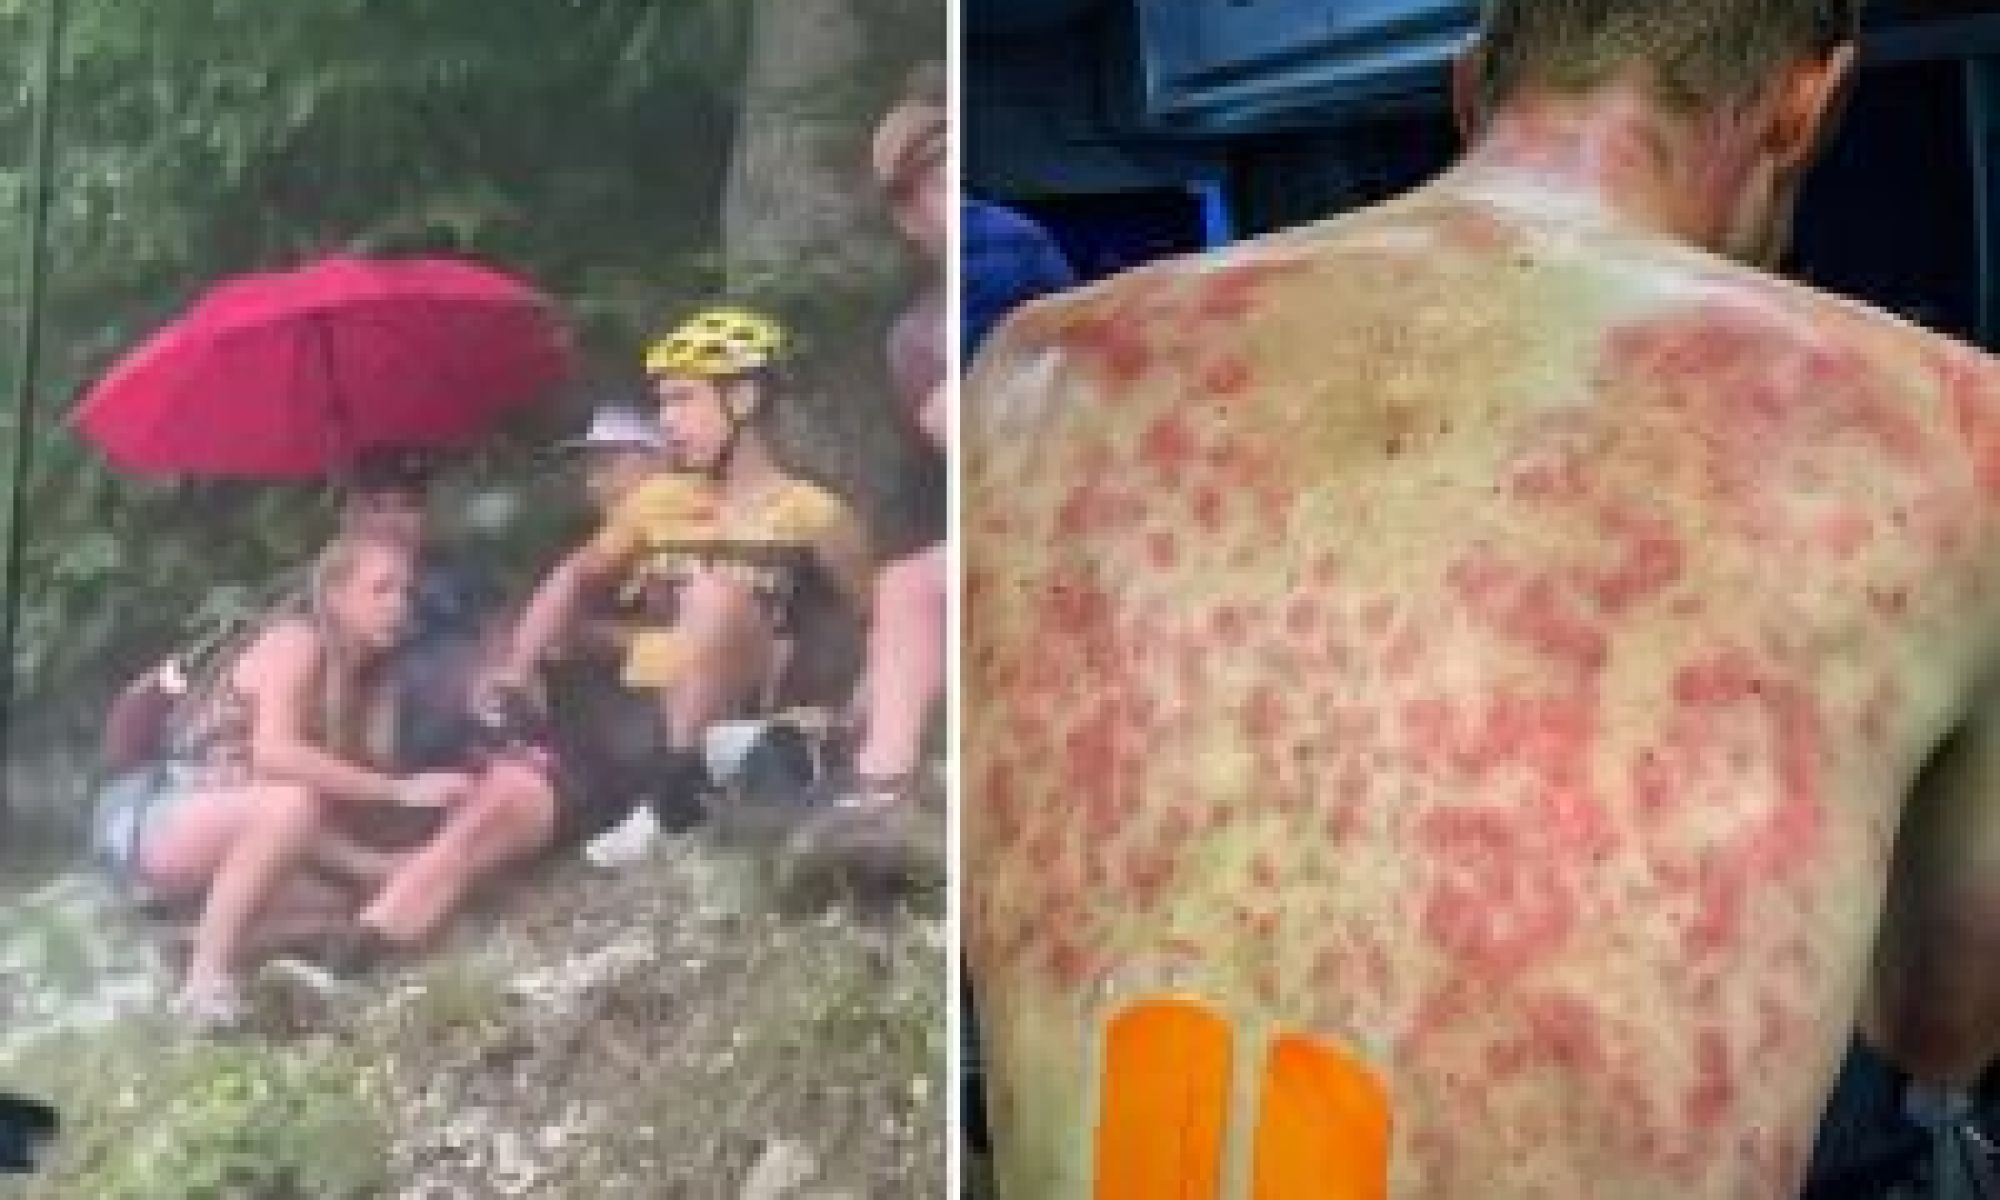 Riders forced under makeshift rafts as hailstorm batters Critérium du Dauphiné